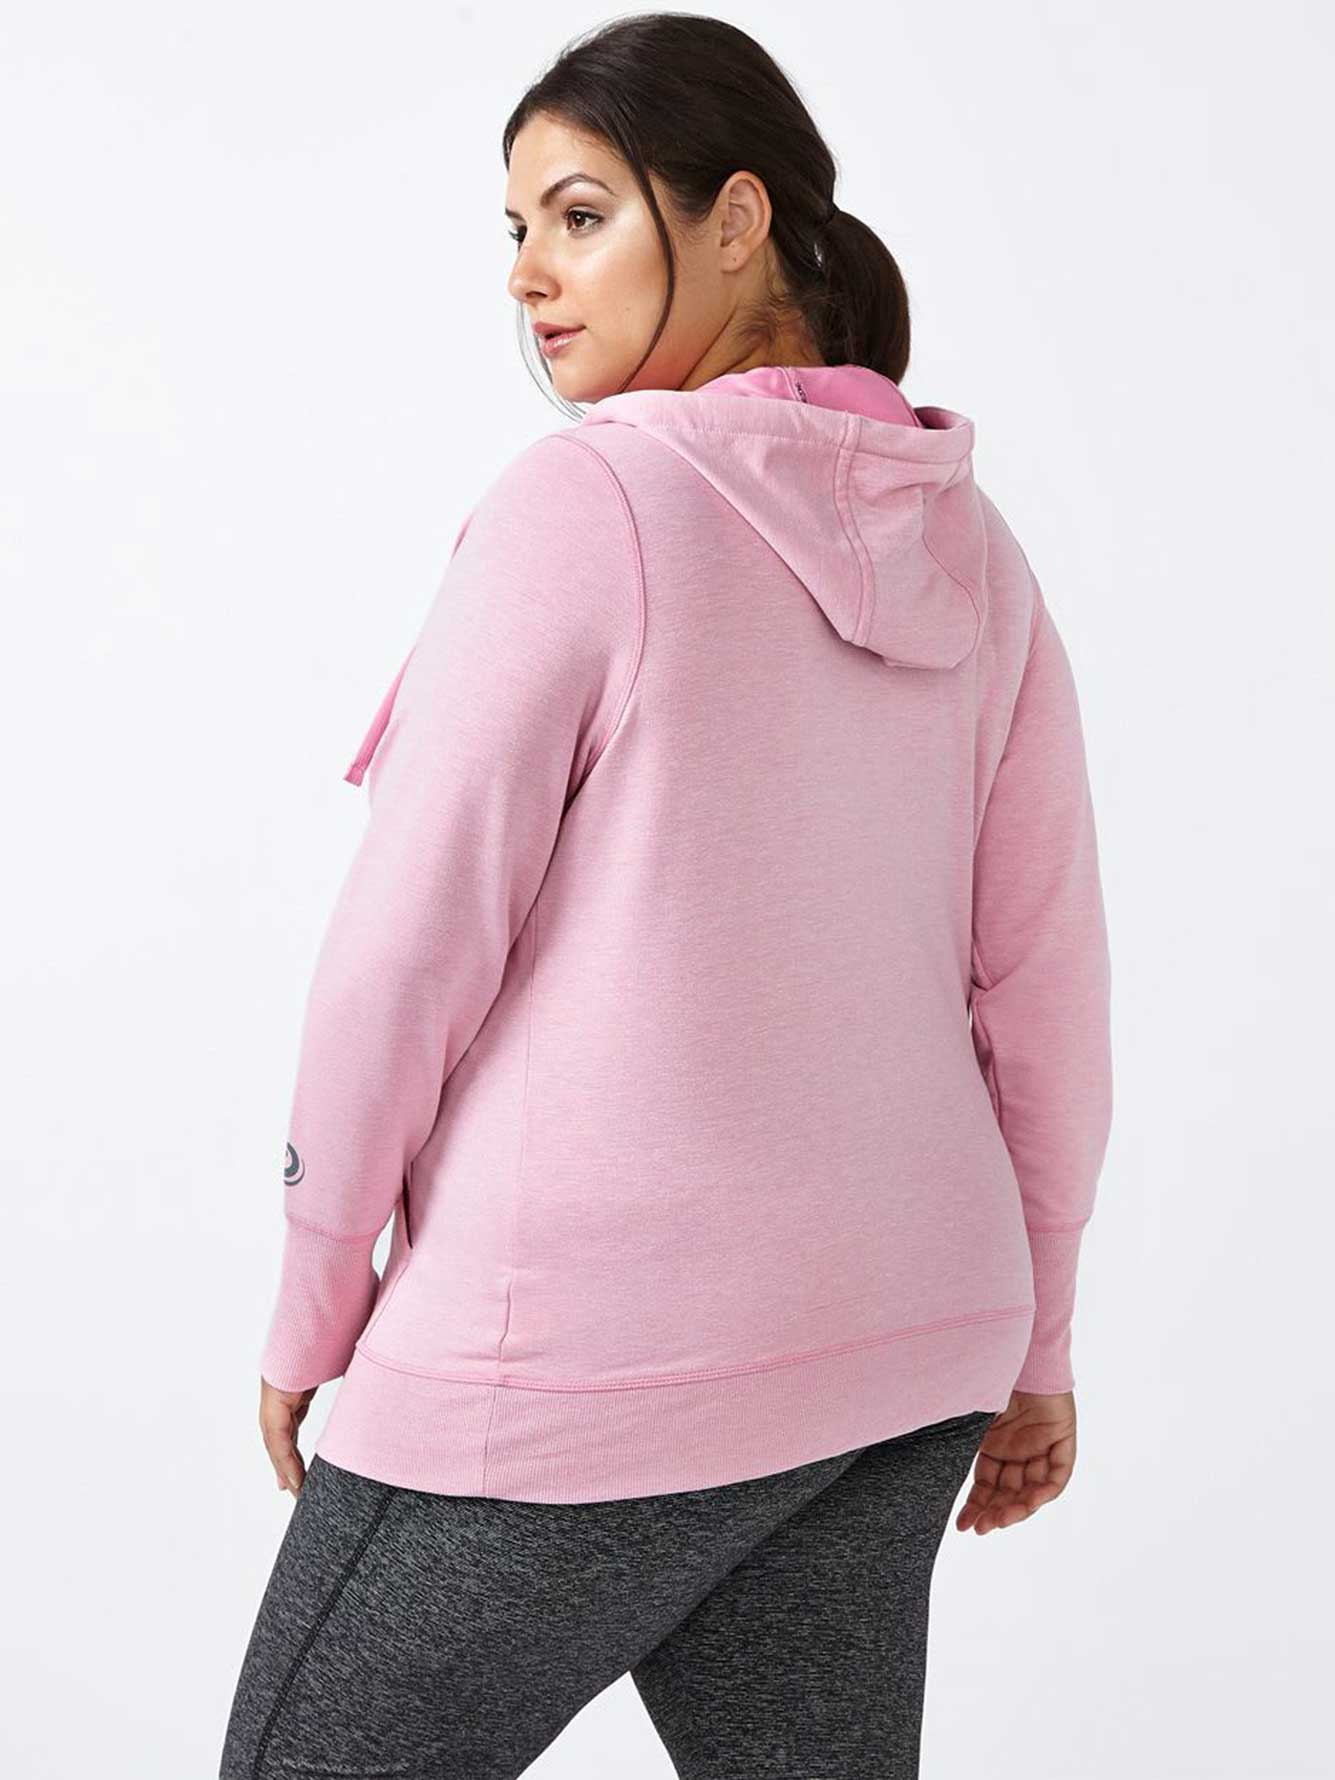 Plus size zip up hoodies